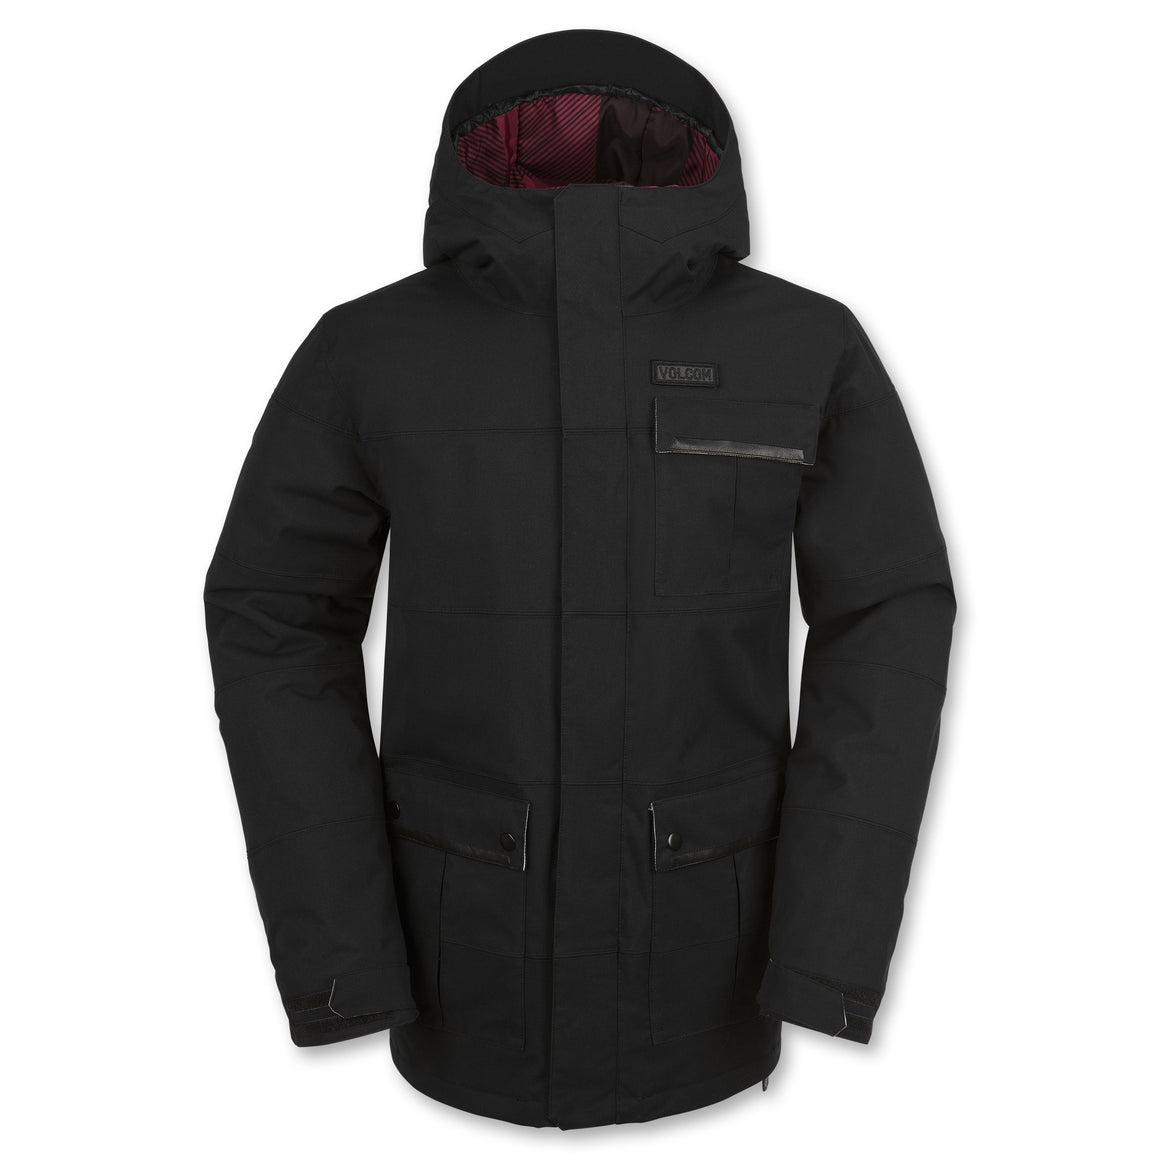 Pat Moore Insulated Jacket